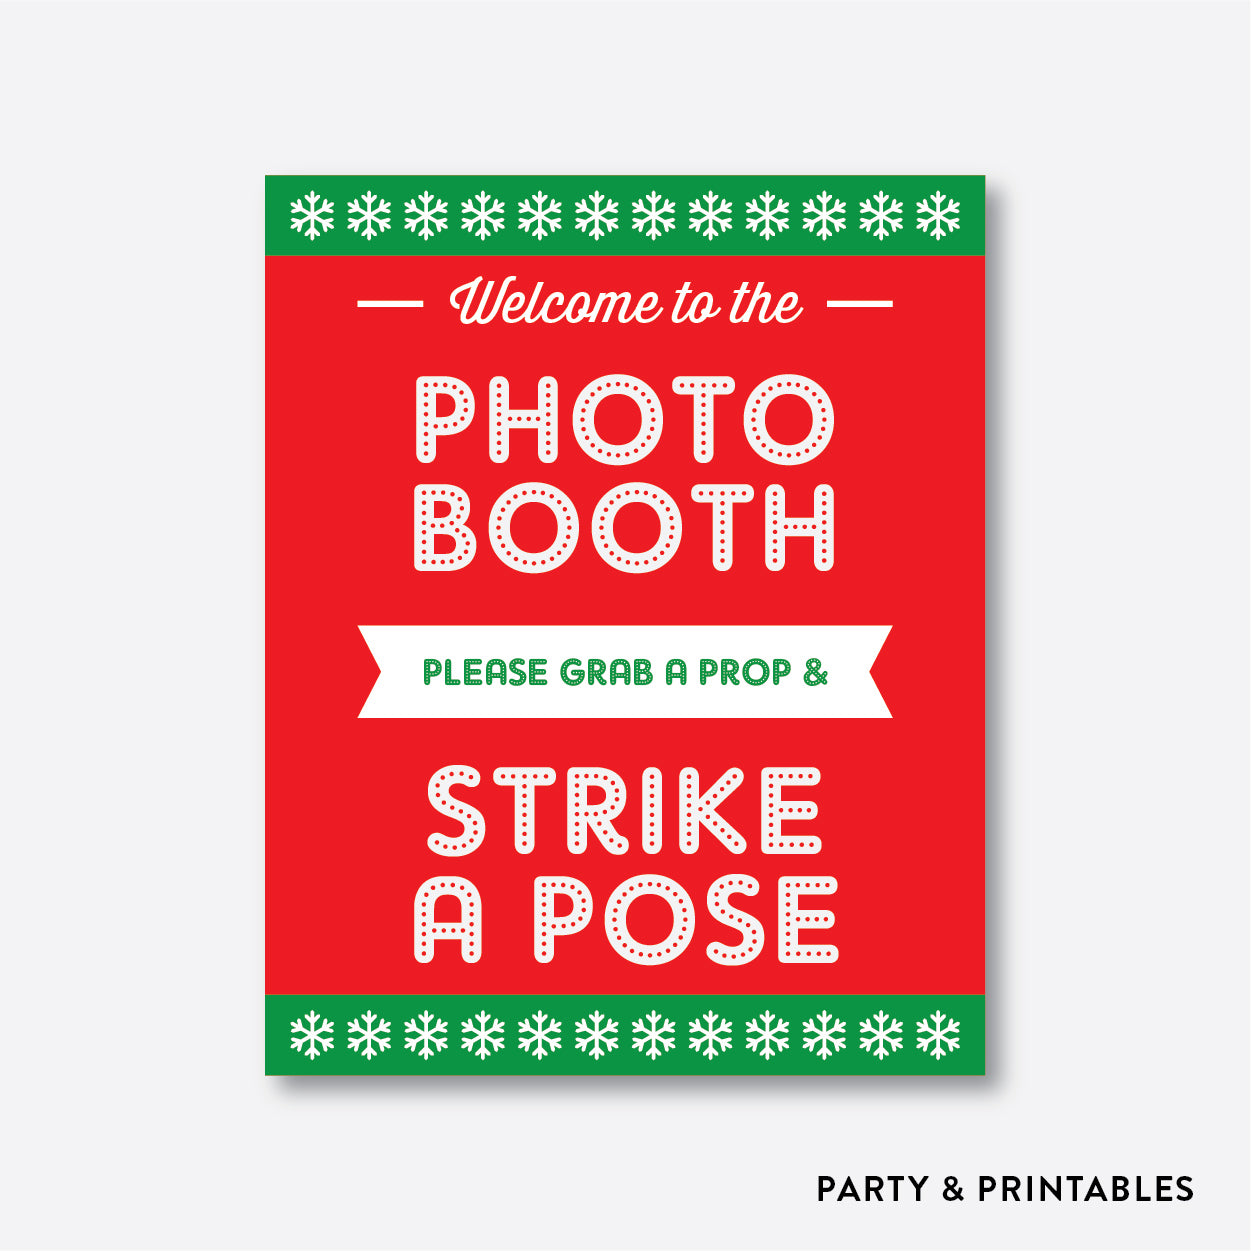 image about Free Printable Photo Booth Sign named Xmas Photograph Booth Props + Picture Booth Indication / Immediate Obtain (PBP.06)